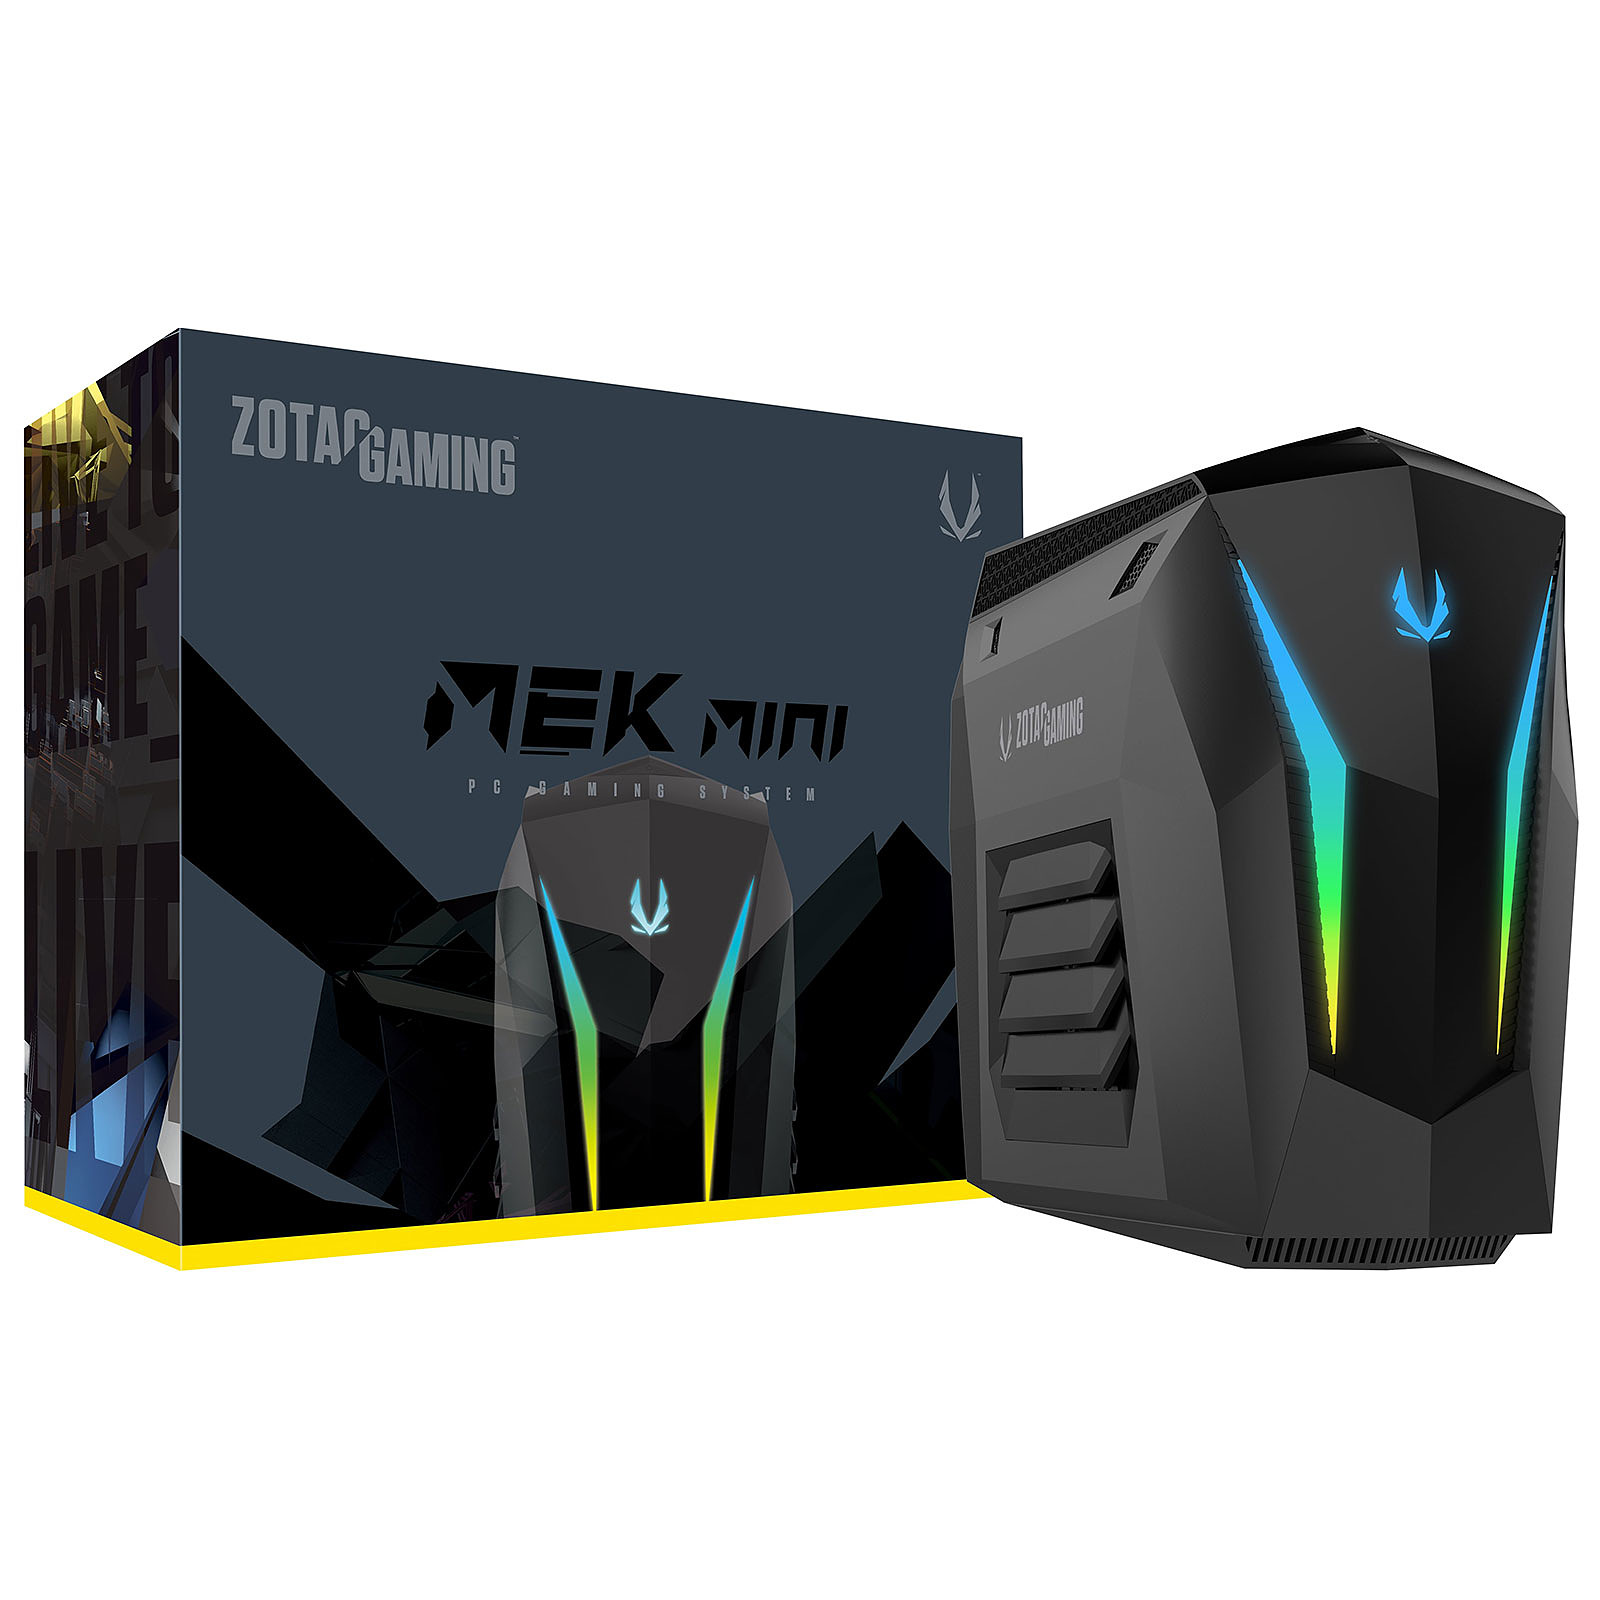 ZOTAC MEK MINI (GM2070C701B)